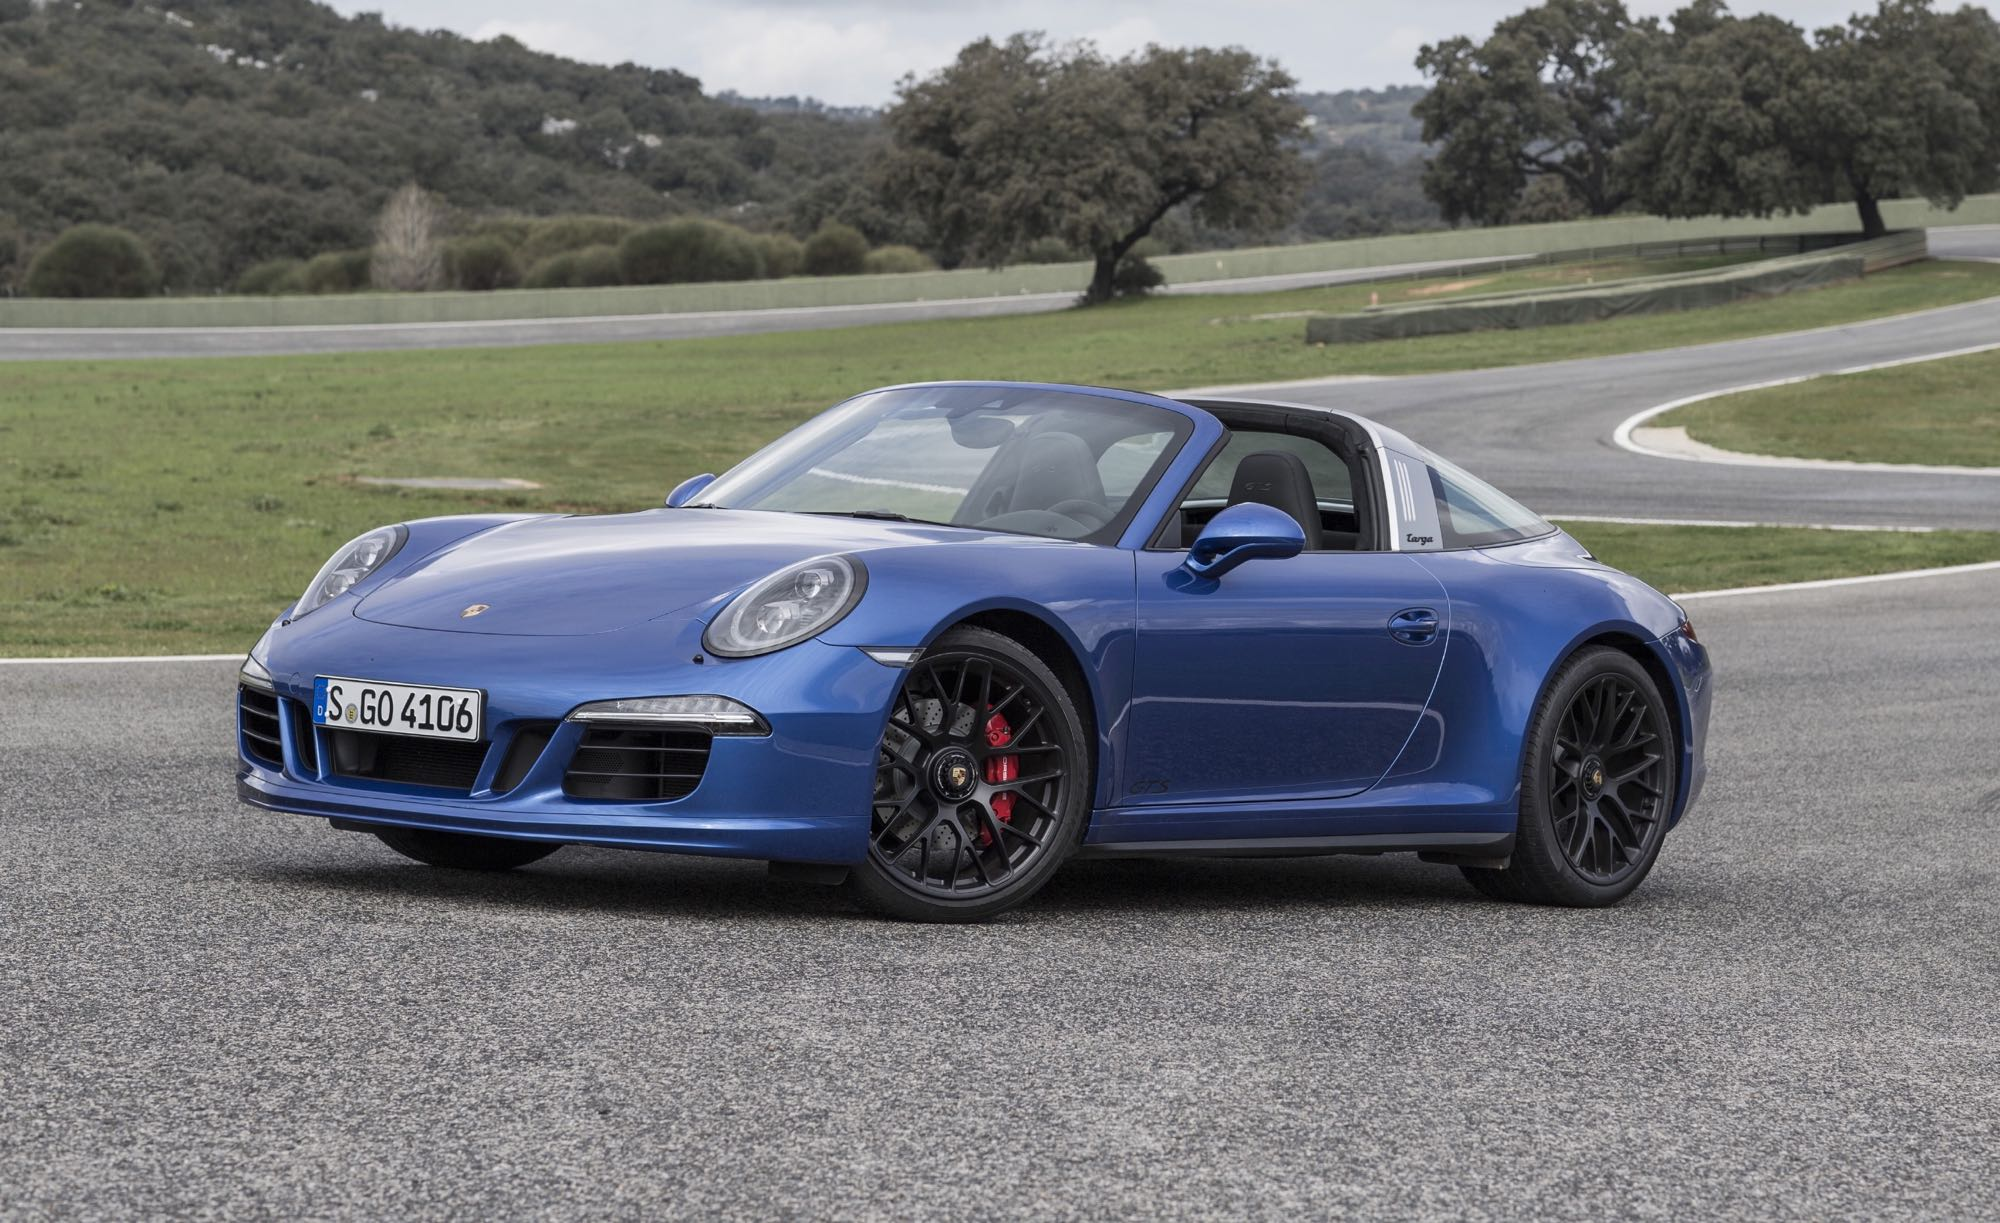 2015 Porsche 911 Targa 4 Gts Review Photos Caradvice